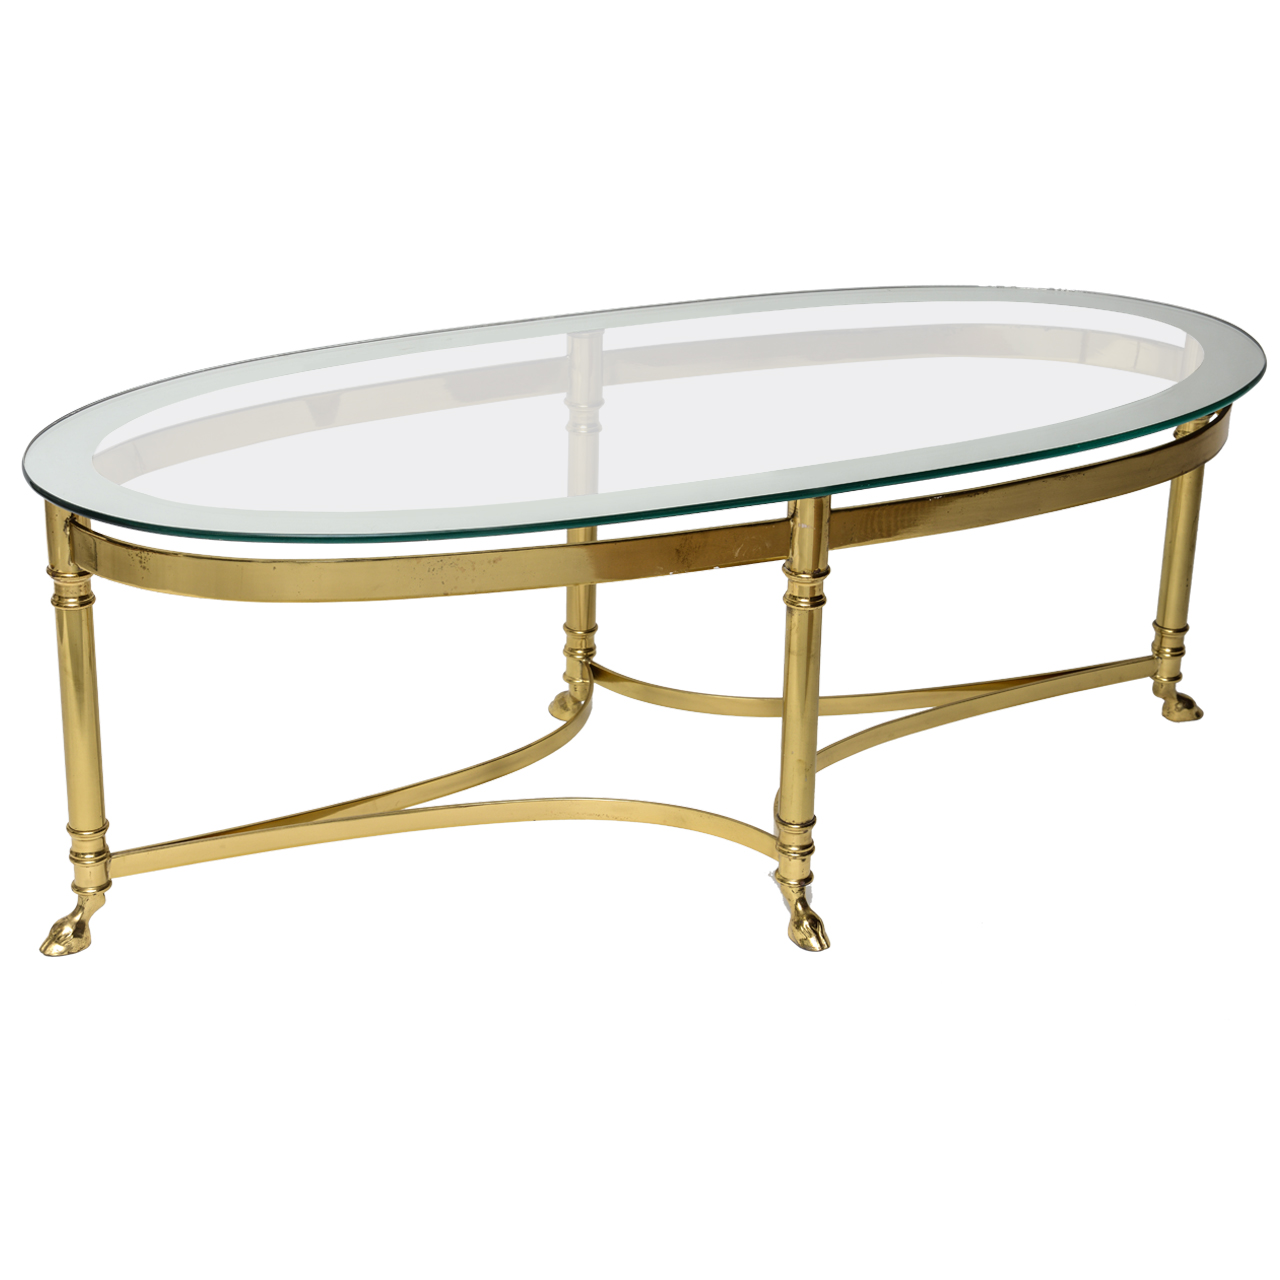 oval-glass-top-coffee-tables-but-we-think-they-are-awesome-and-want-to-share-them-with-you-rather-elegantly (Image 2 of 10)